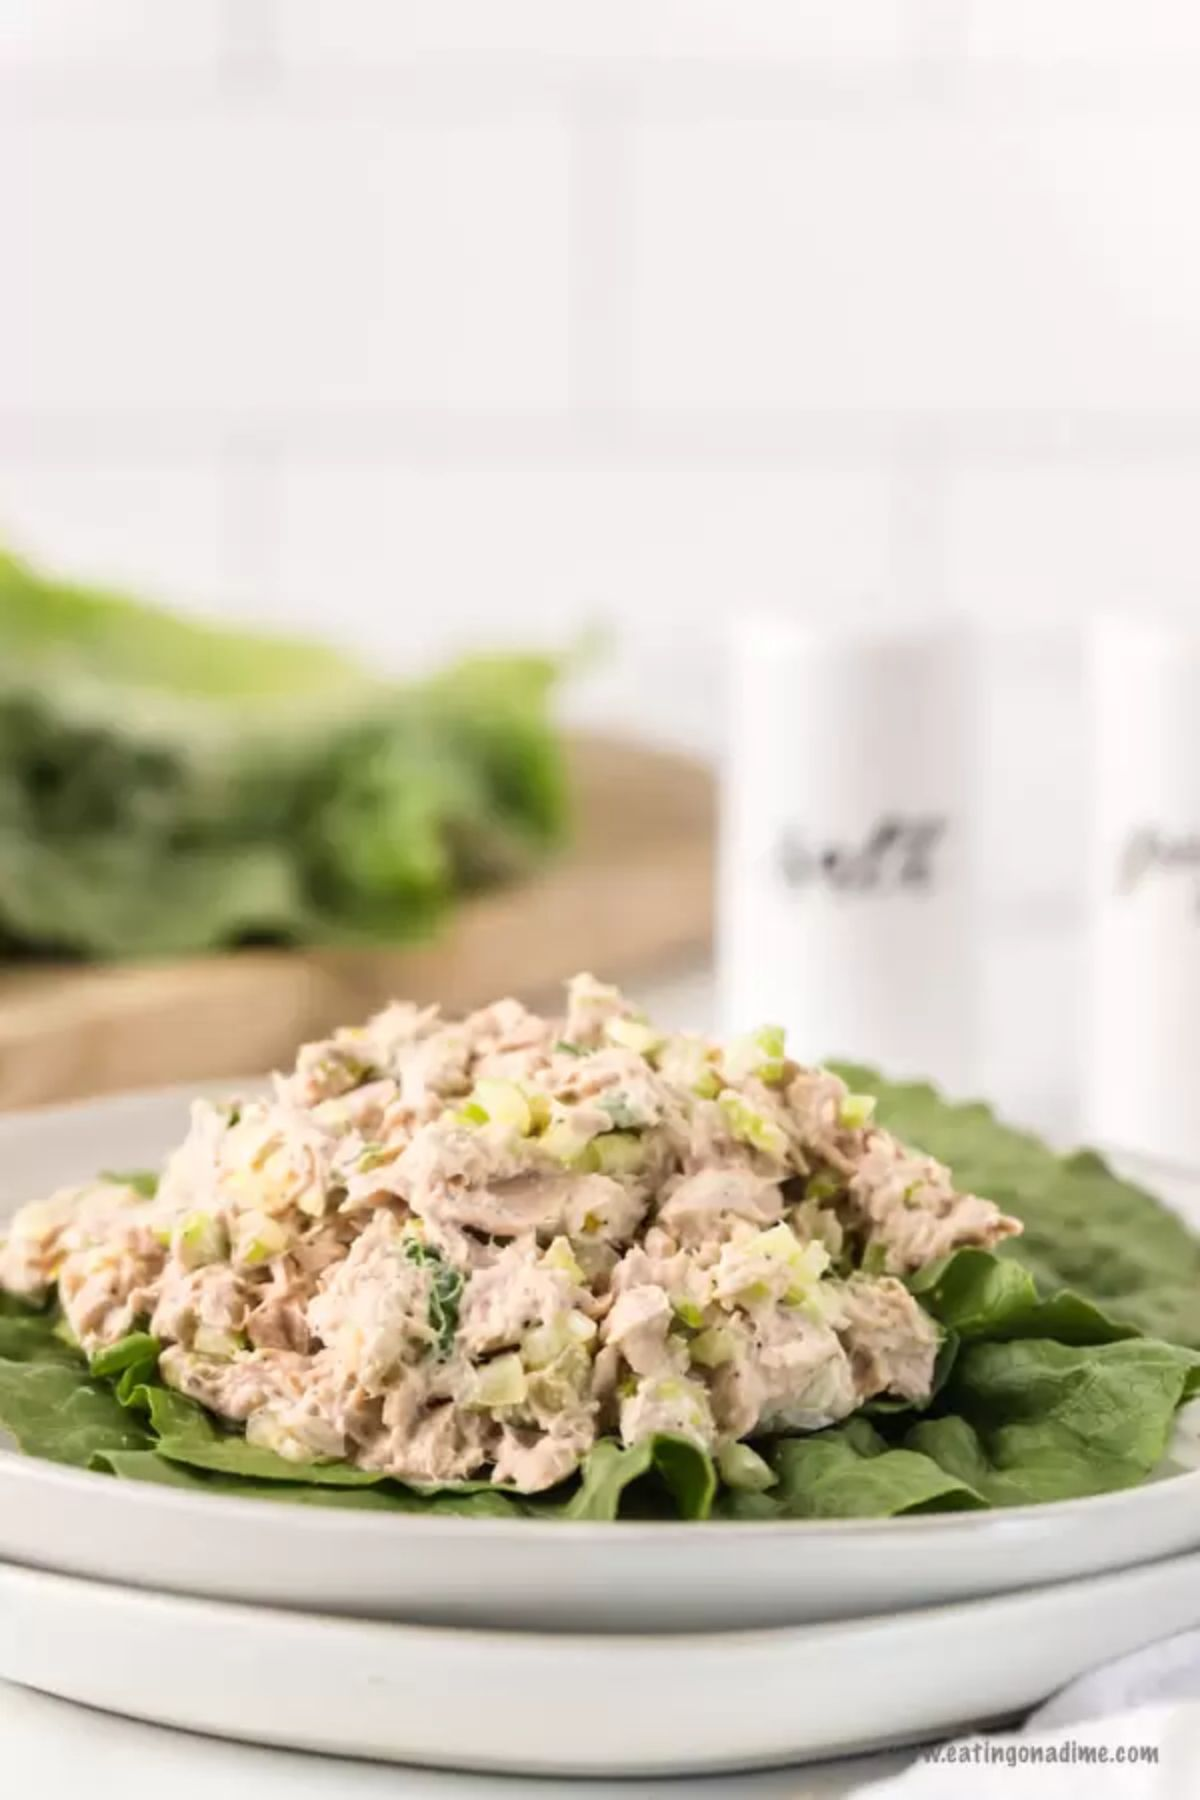 In the foreground is a stack of two white plates with lettuce leaves piled with tuna salad, Blurred in the background are some lettuce leaves on a wooden board and white salt and pepper shakers